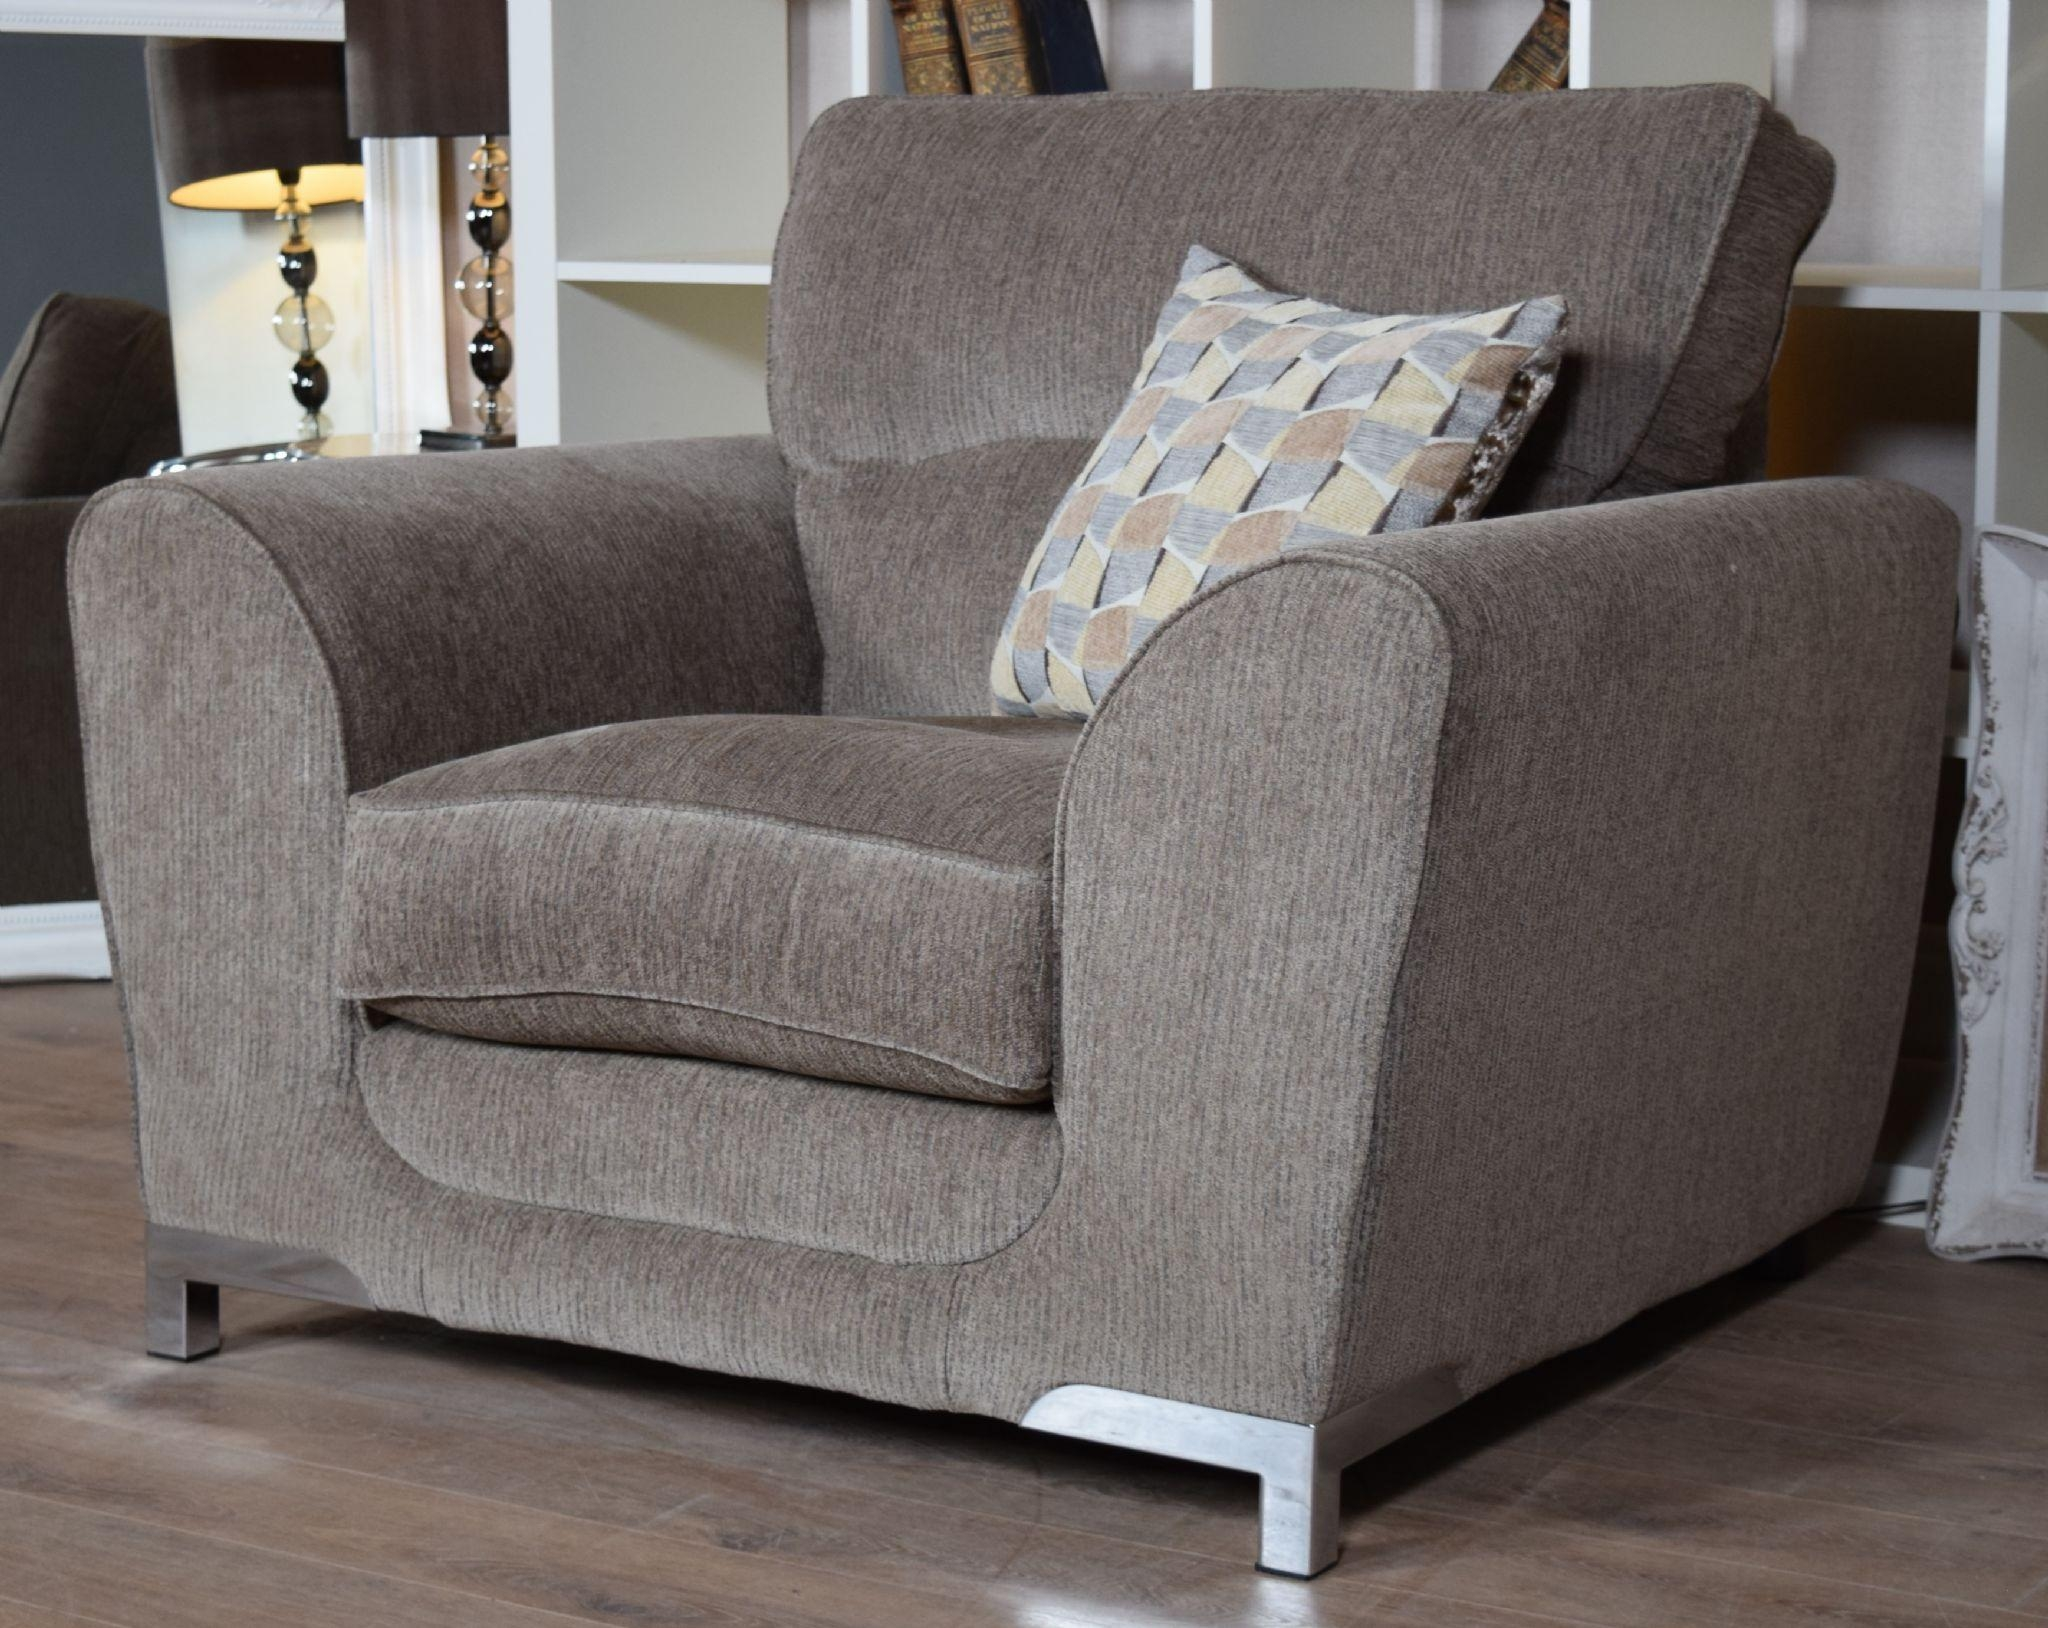 Set Nikki 3 Seater Sofa & Cuddle Chair Suite Set – Mocha Grey For 3 Seater Sofa And Cuddle Chairs (Image 14 of 20)